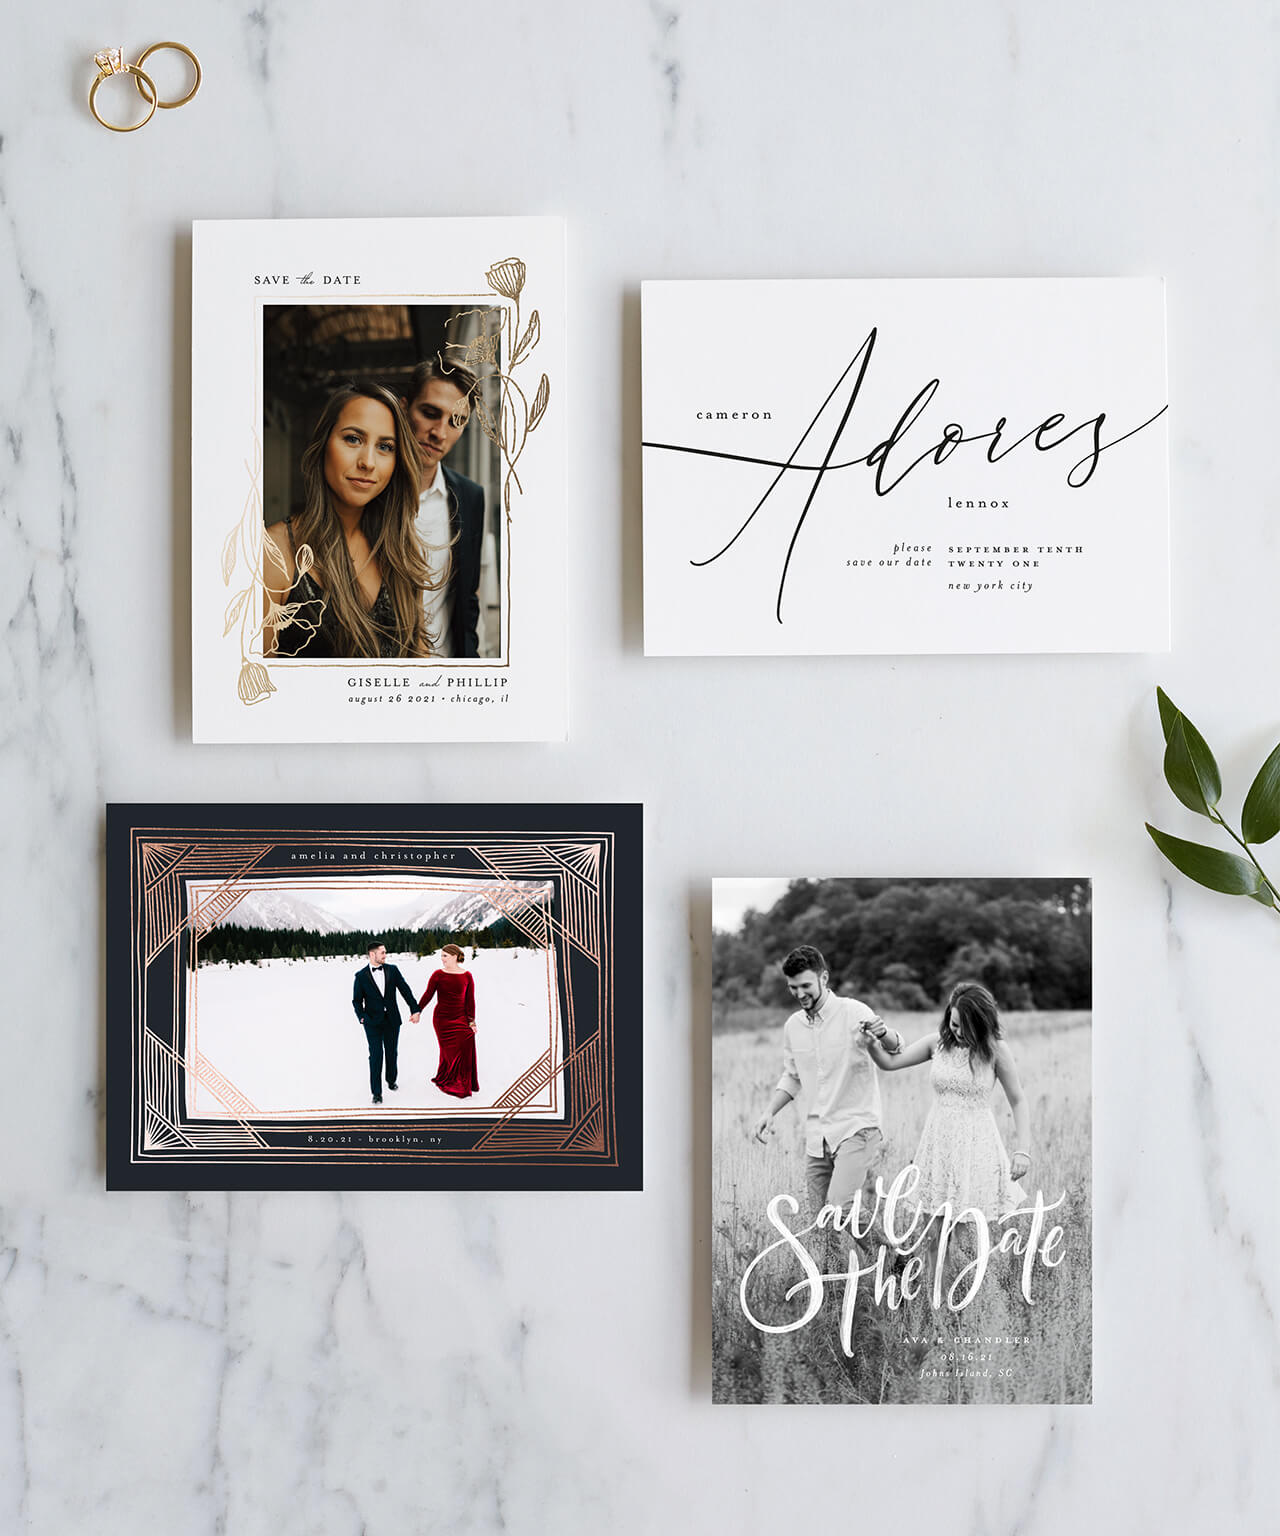 TOP 10 REASONS TO SEND SAVE THE DATES